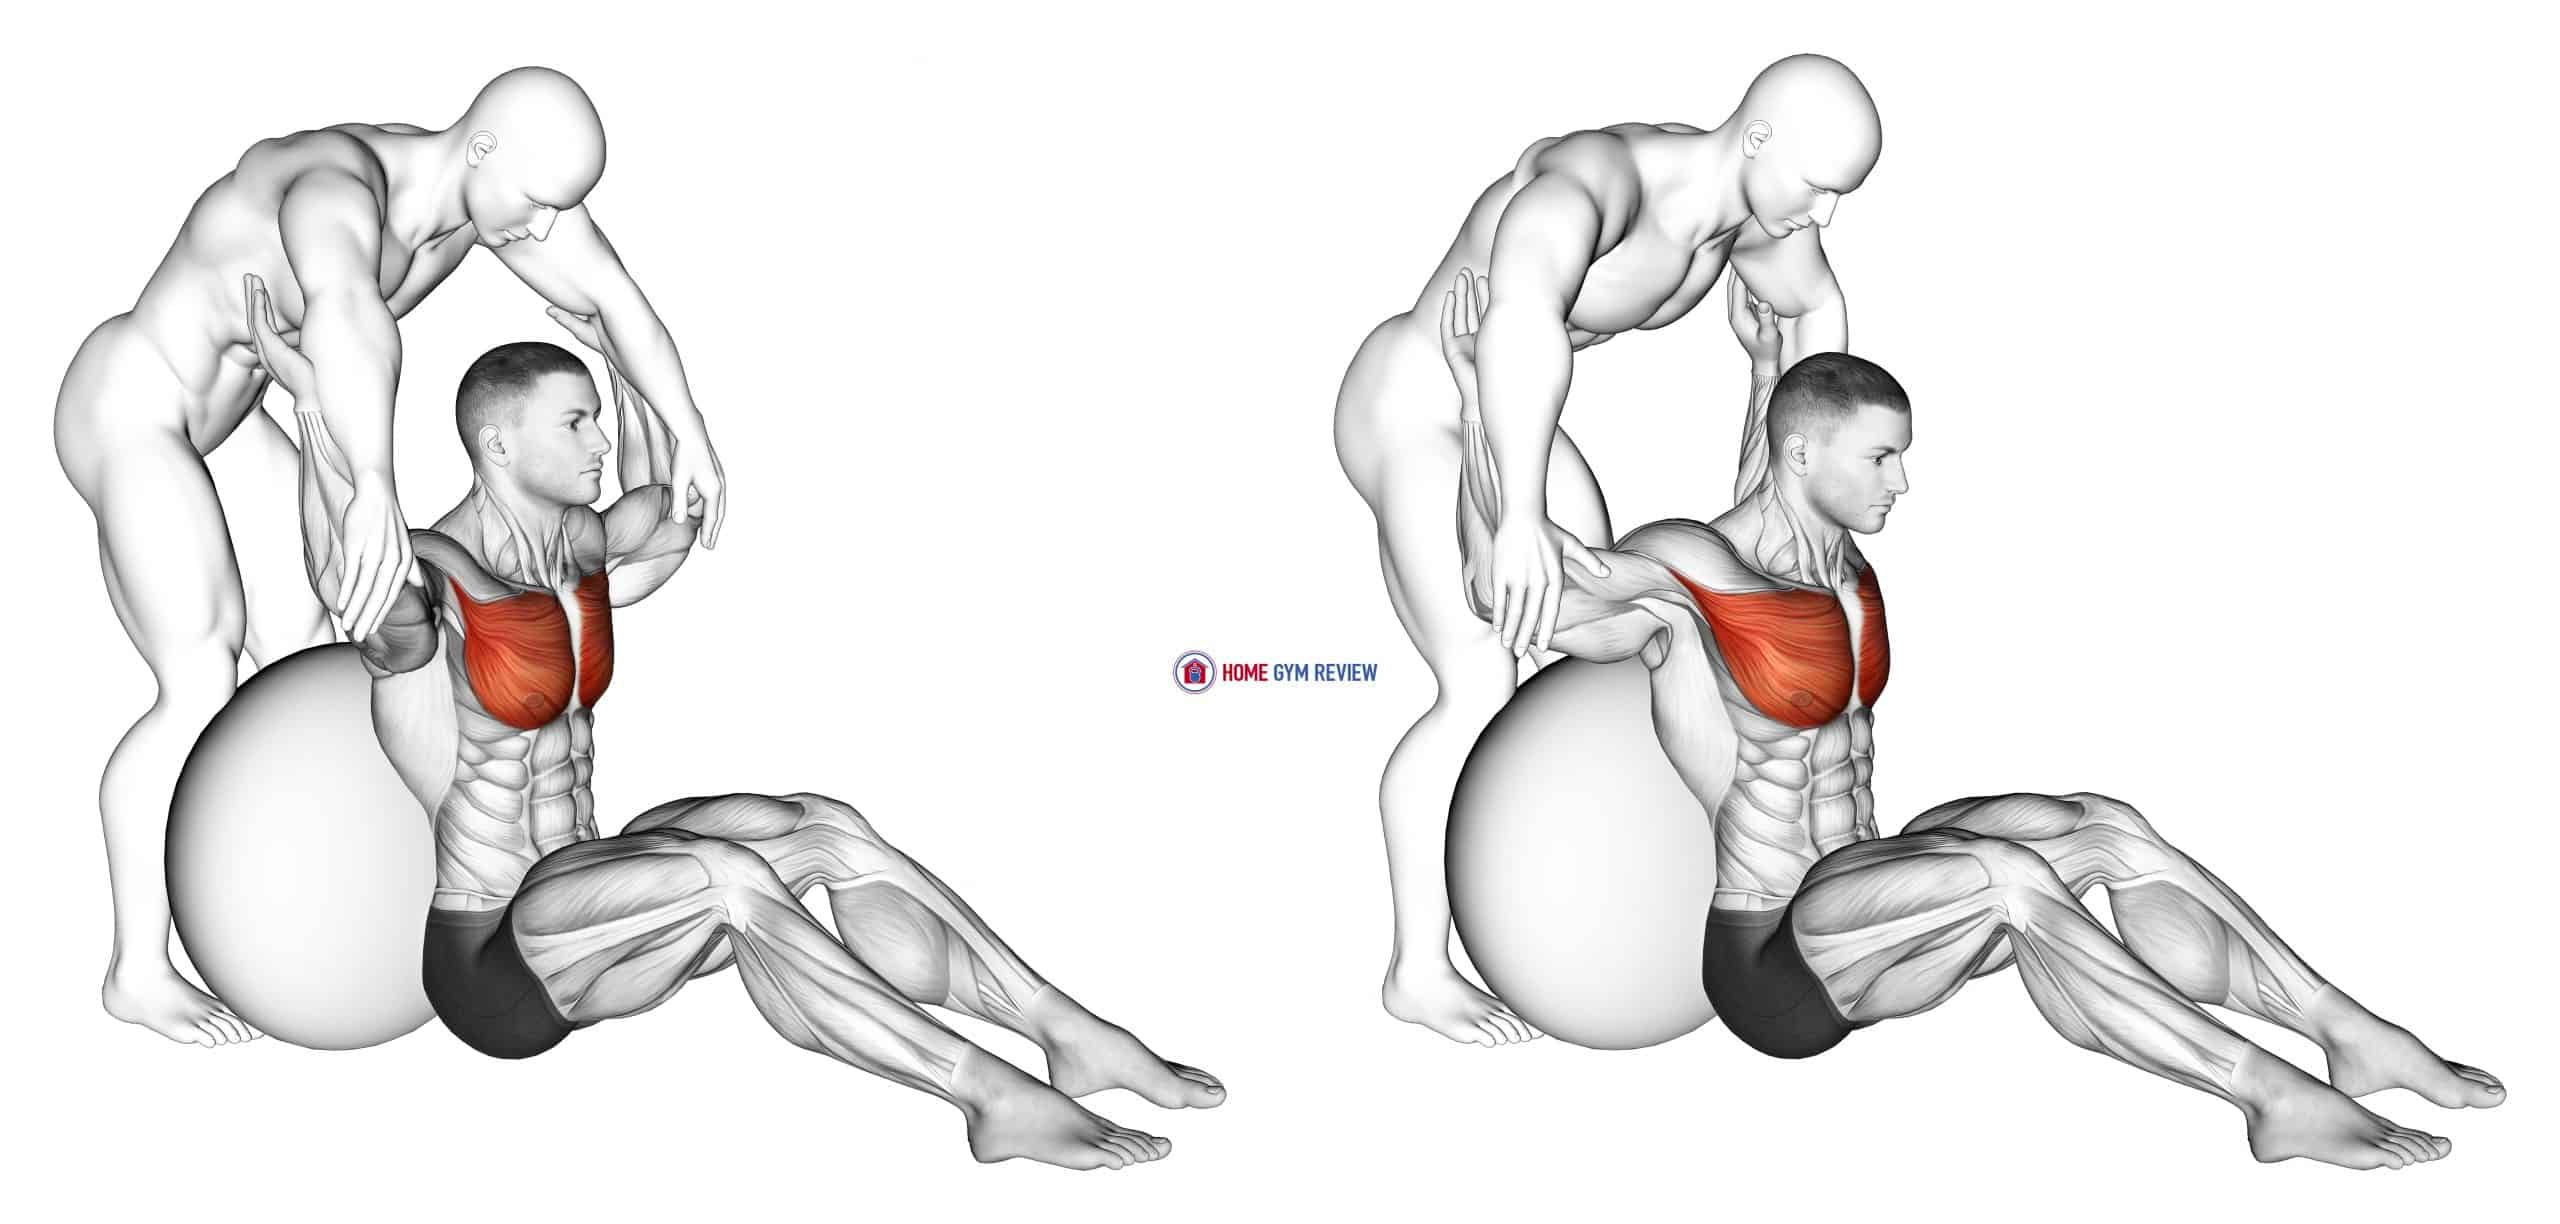 Assisted Seated Pectoralis Major Stretch With Stability Ball